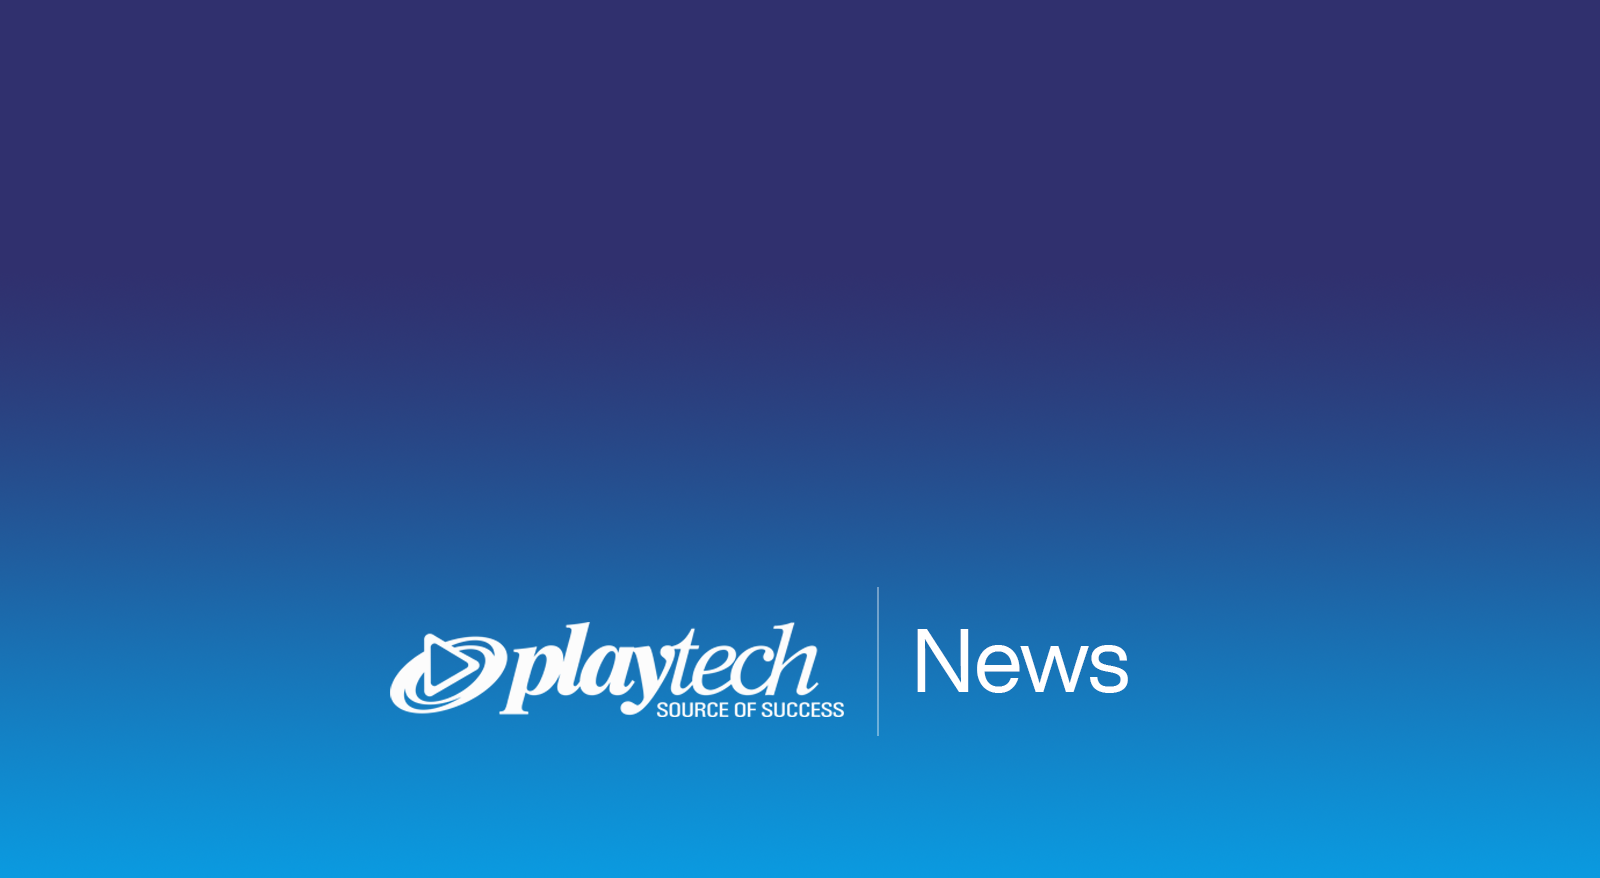 Playtech Swiss Casino Partners With Playtech To Lead New Online Market In Switzerland